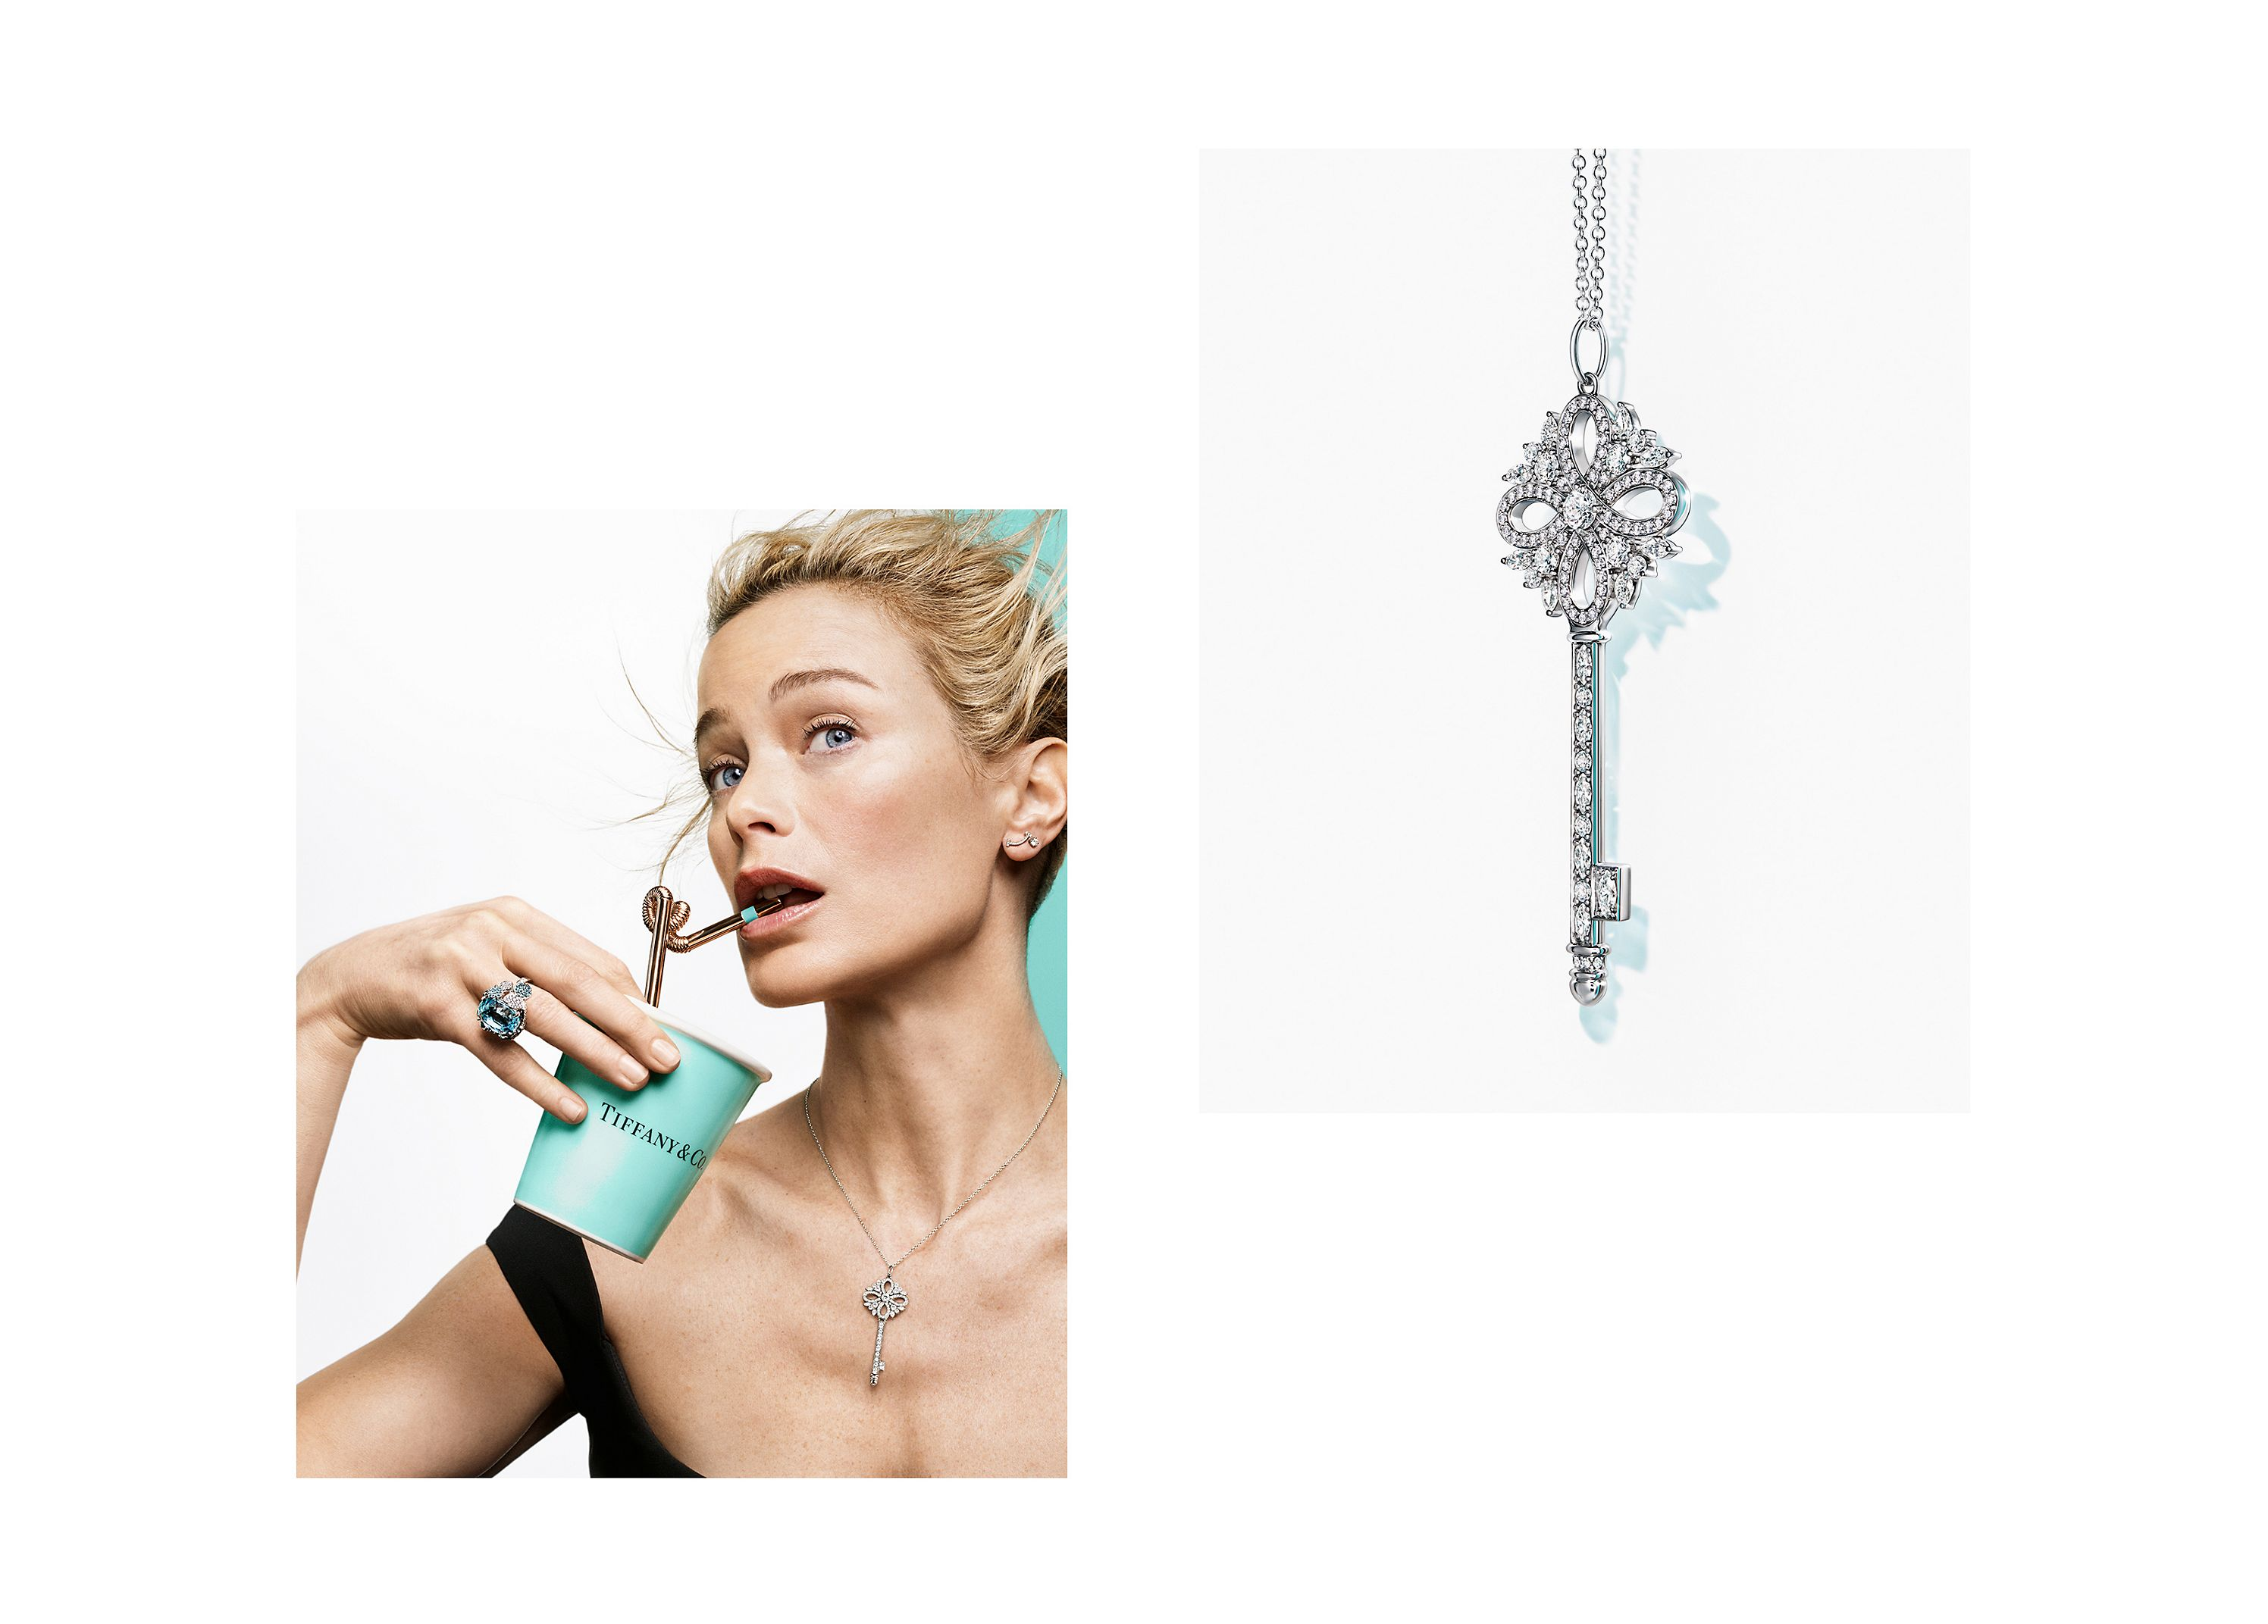 cab533ade Tiffany & Co. Official | Luxury Jewelry, Gifts & Accessories Since 1837